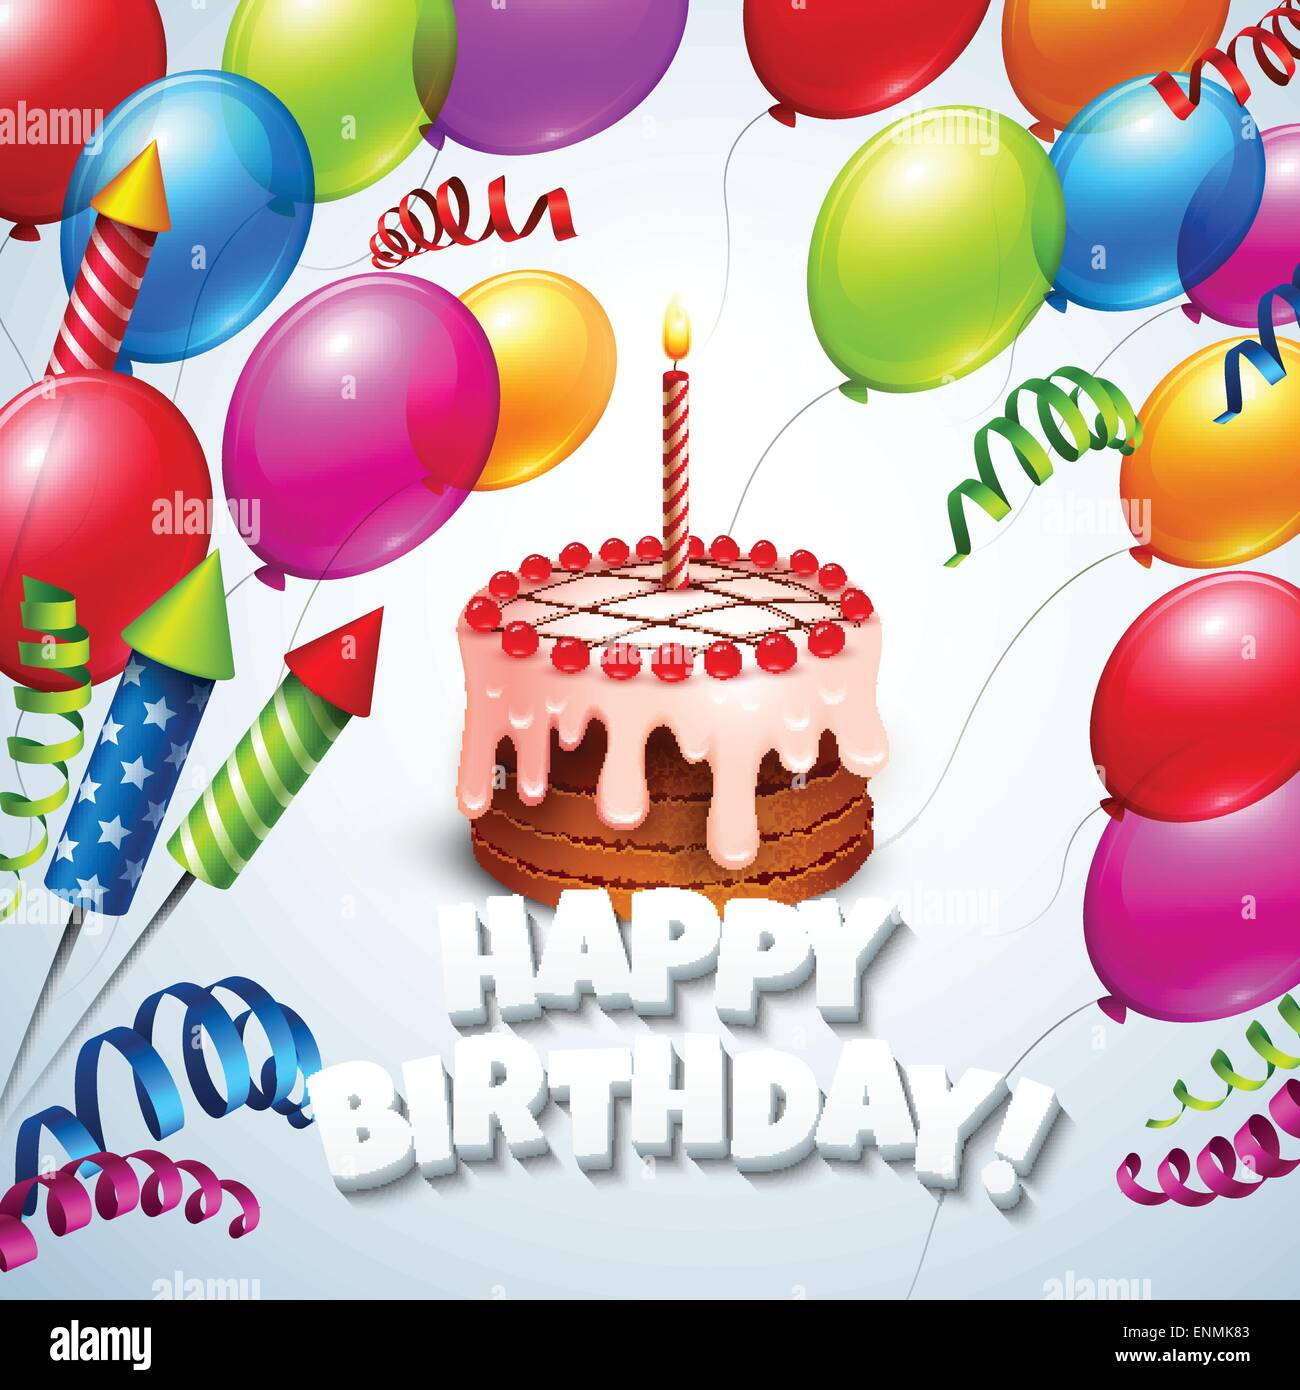 Happy Birthday Greeting Card With Cake And Balloons Vector Illustration EPS 10